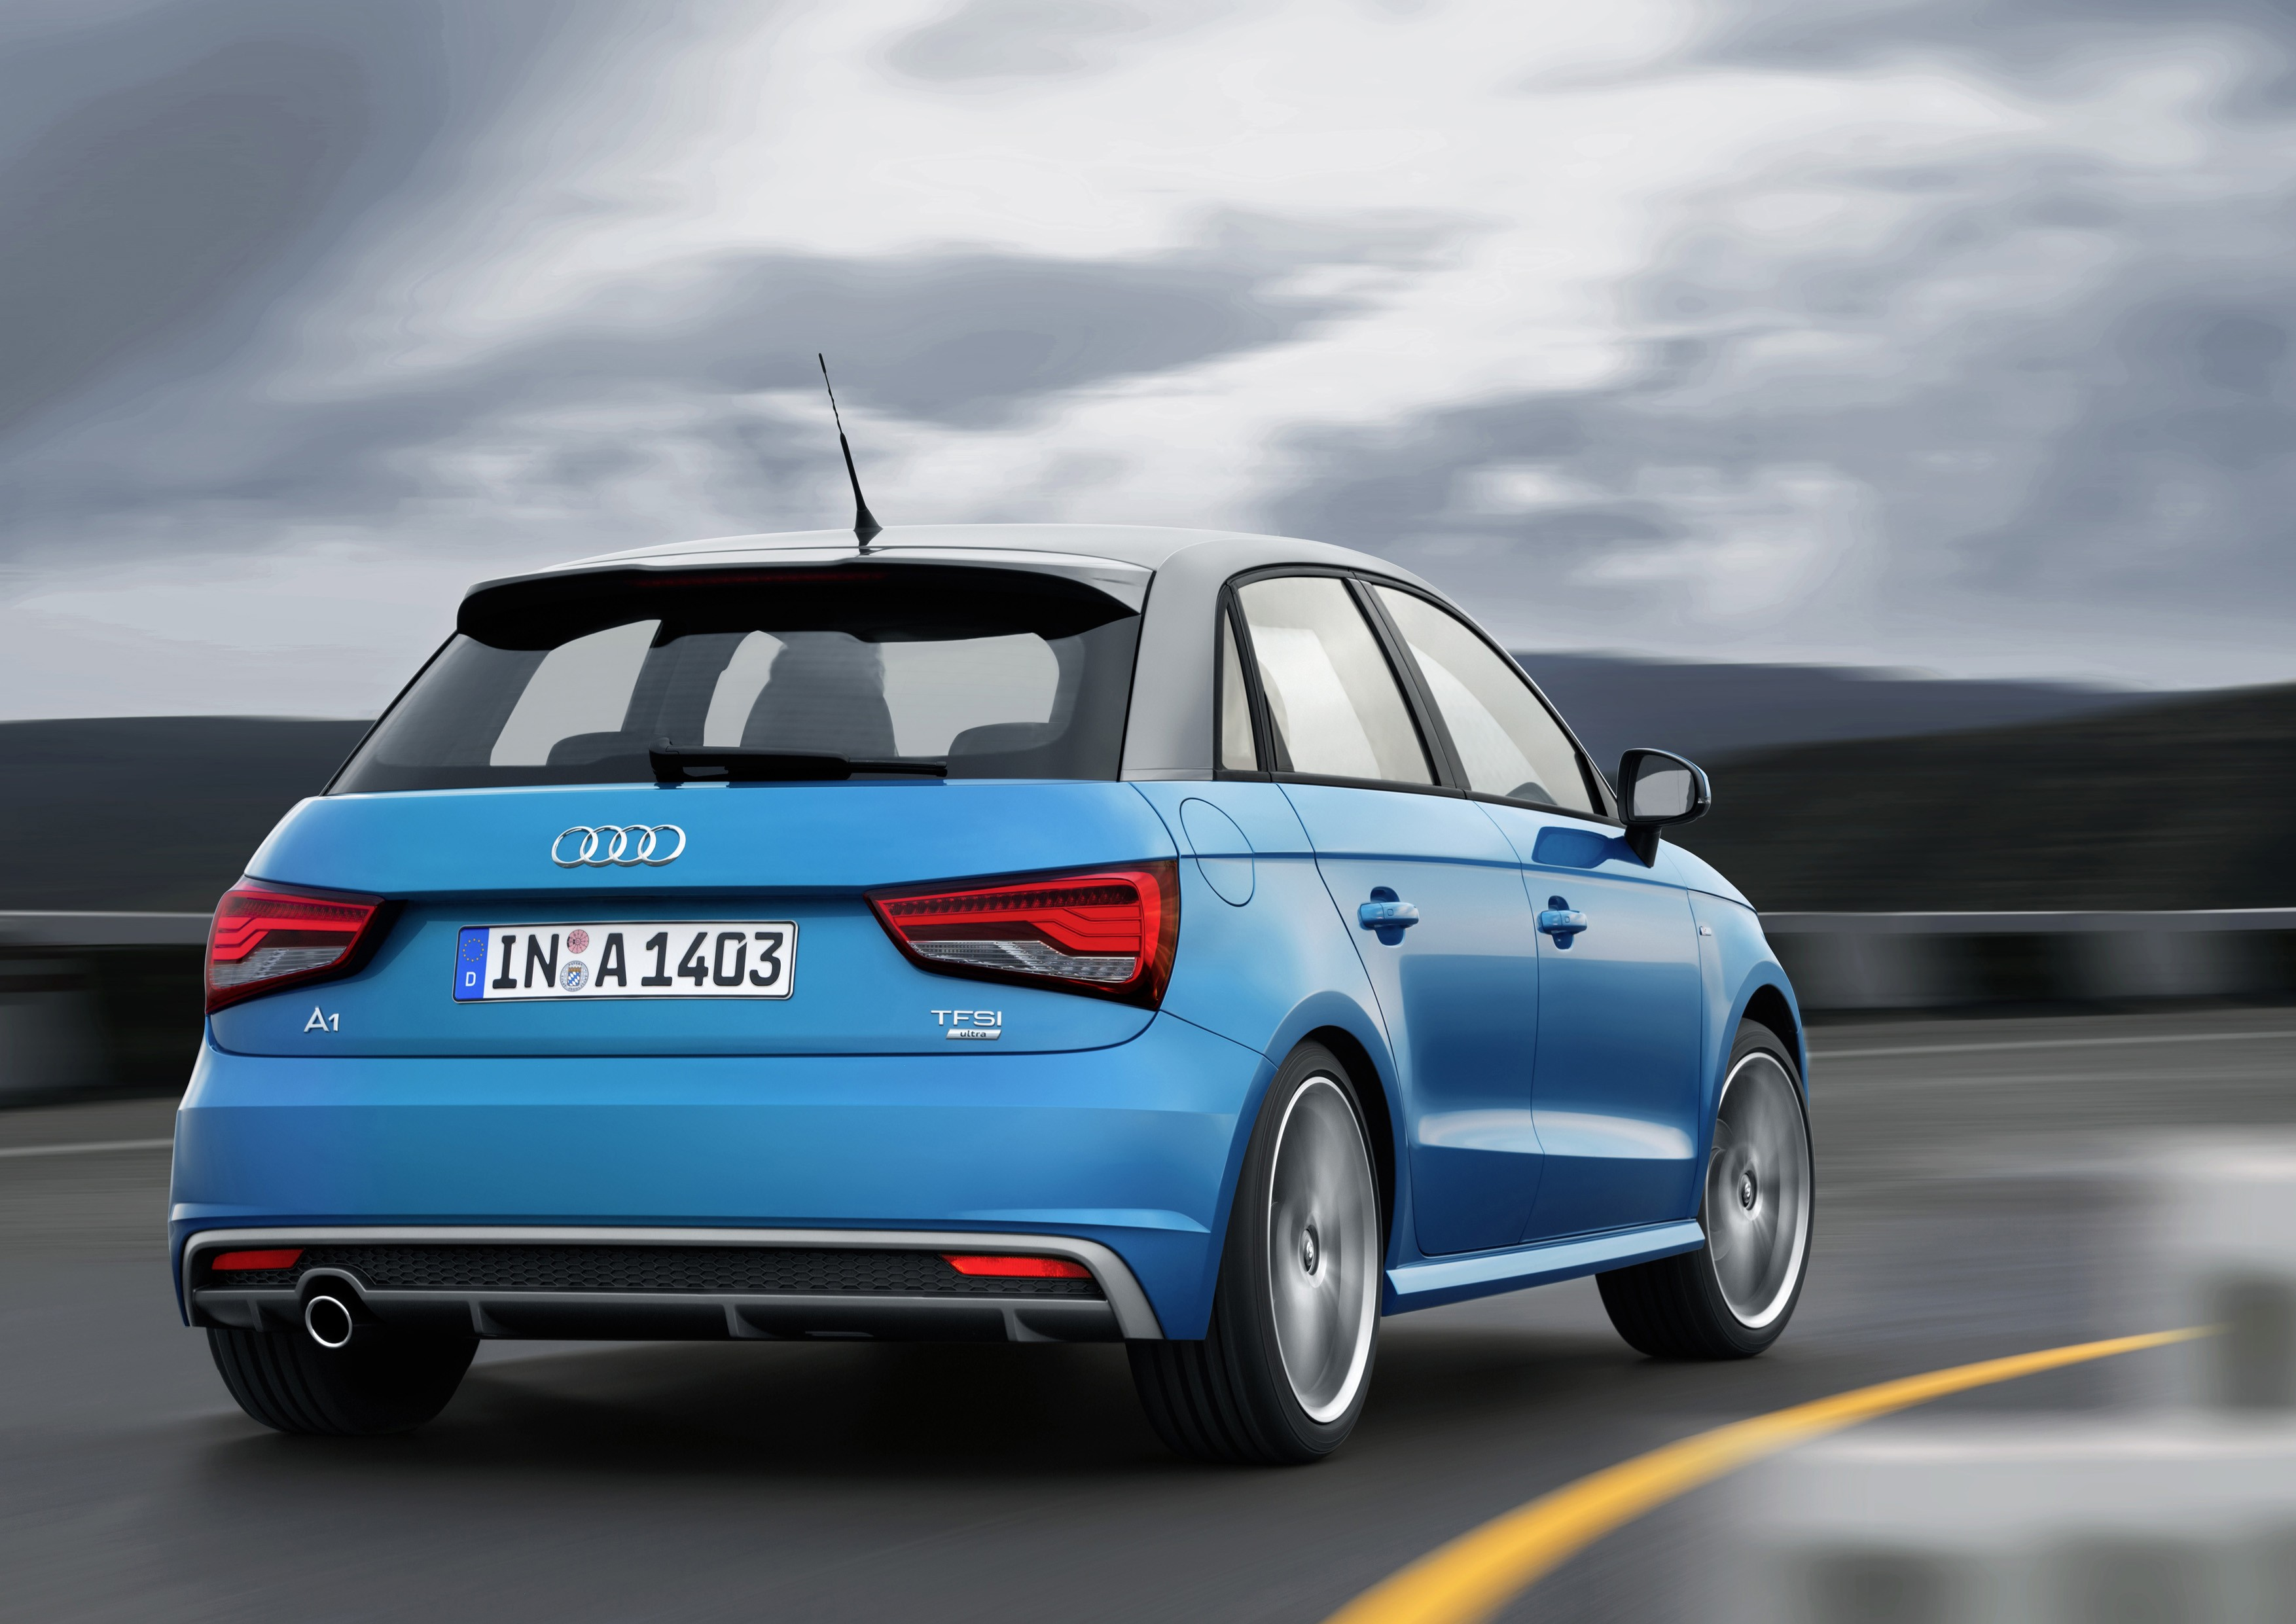 Audi Details A1 TFSI ultra With 3-Cylinder Turbo [Video ...